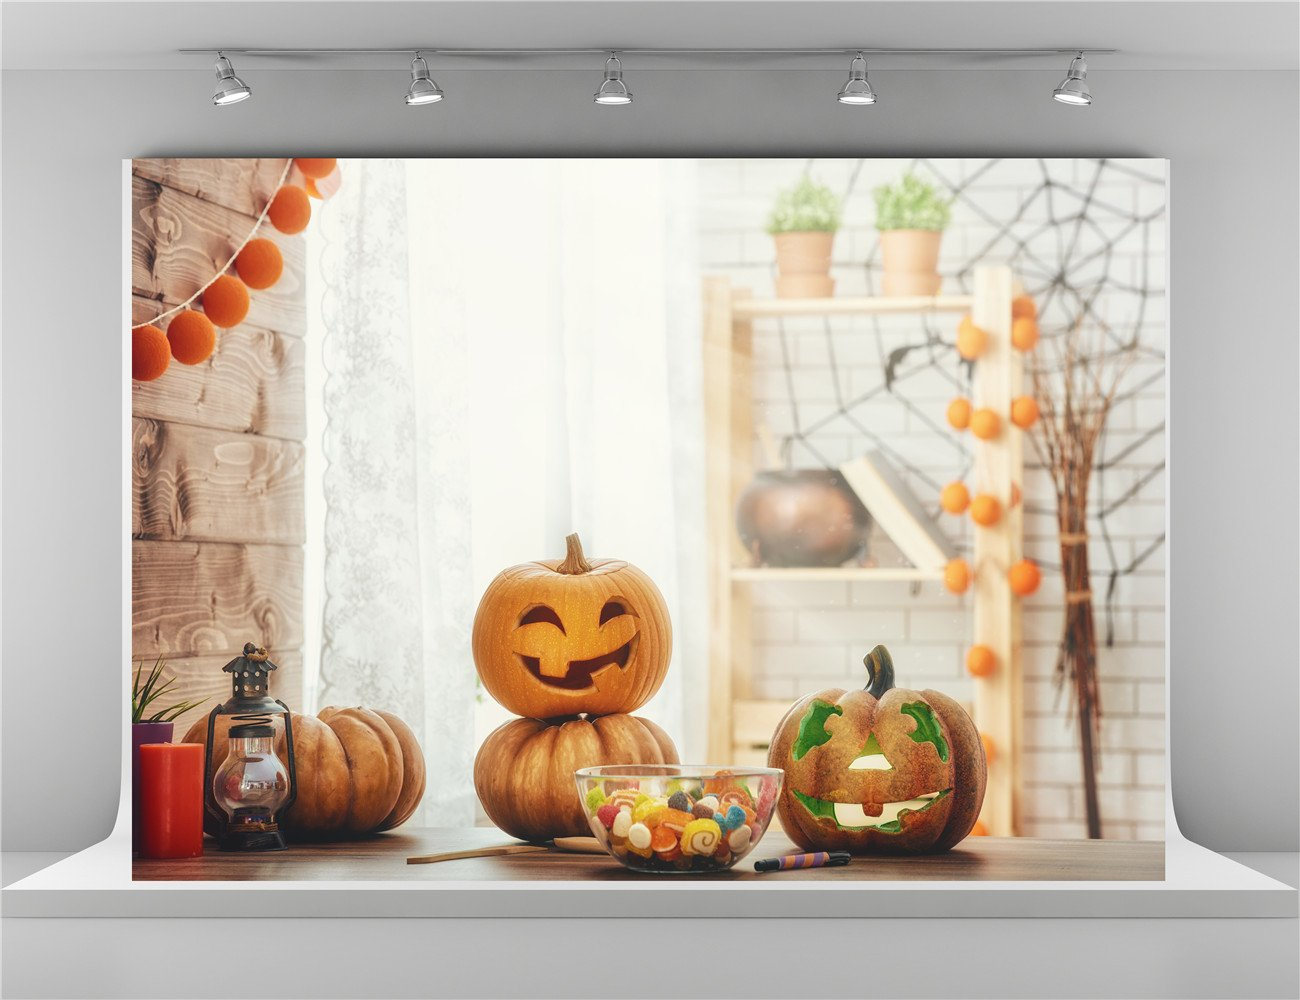 7x5ft-2.2x1.5m Cute Pumpkin Photo Background Spider Web White Brick Wall Backdrop Booth for Happy Thanksgiving Photography Backdrops